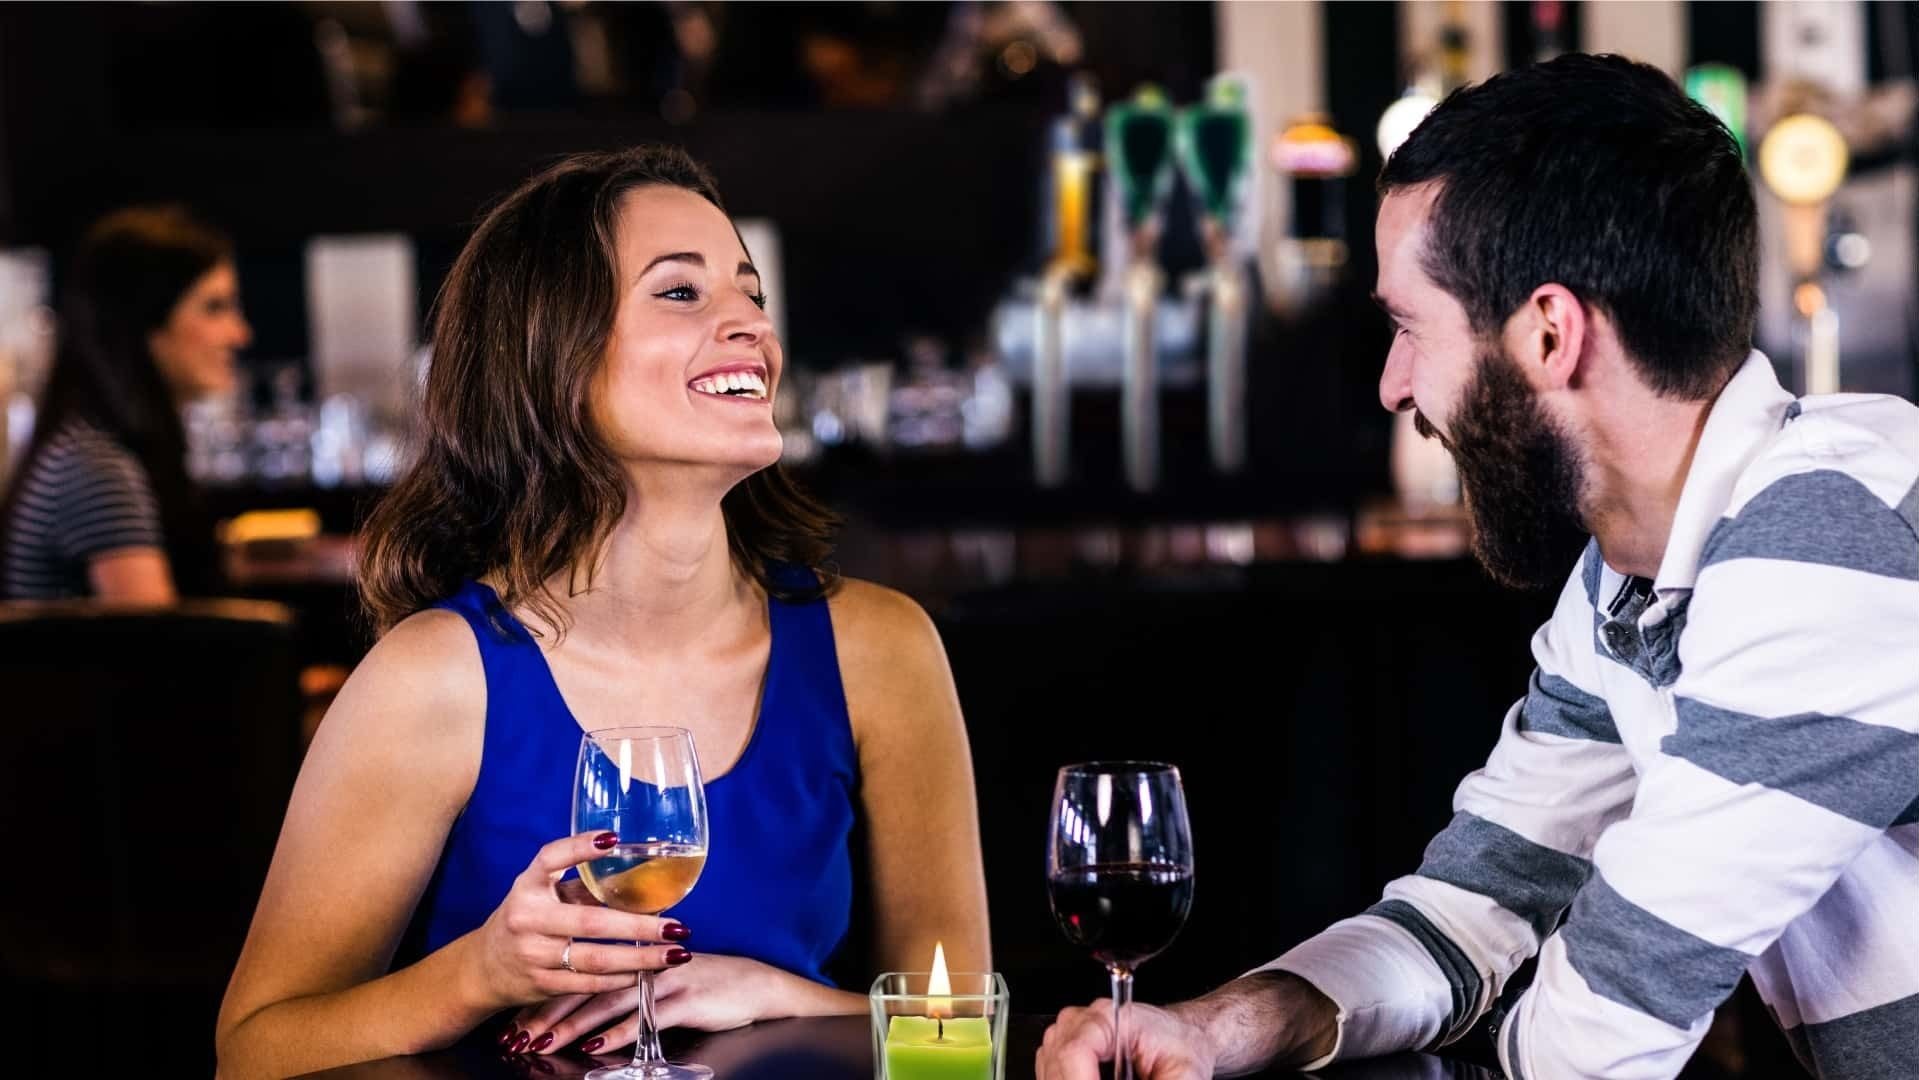 Gualchos expat dating